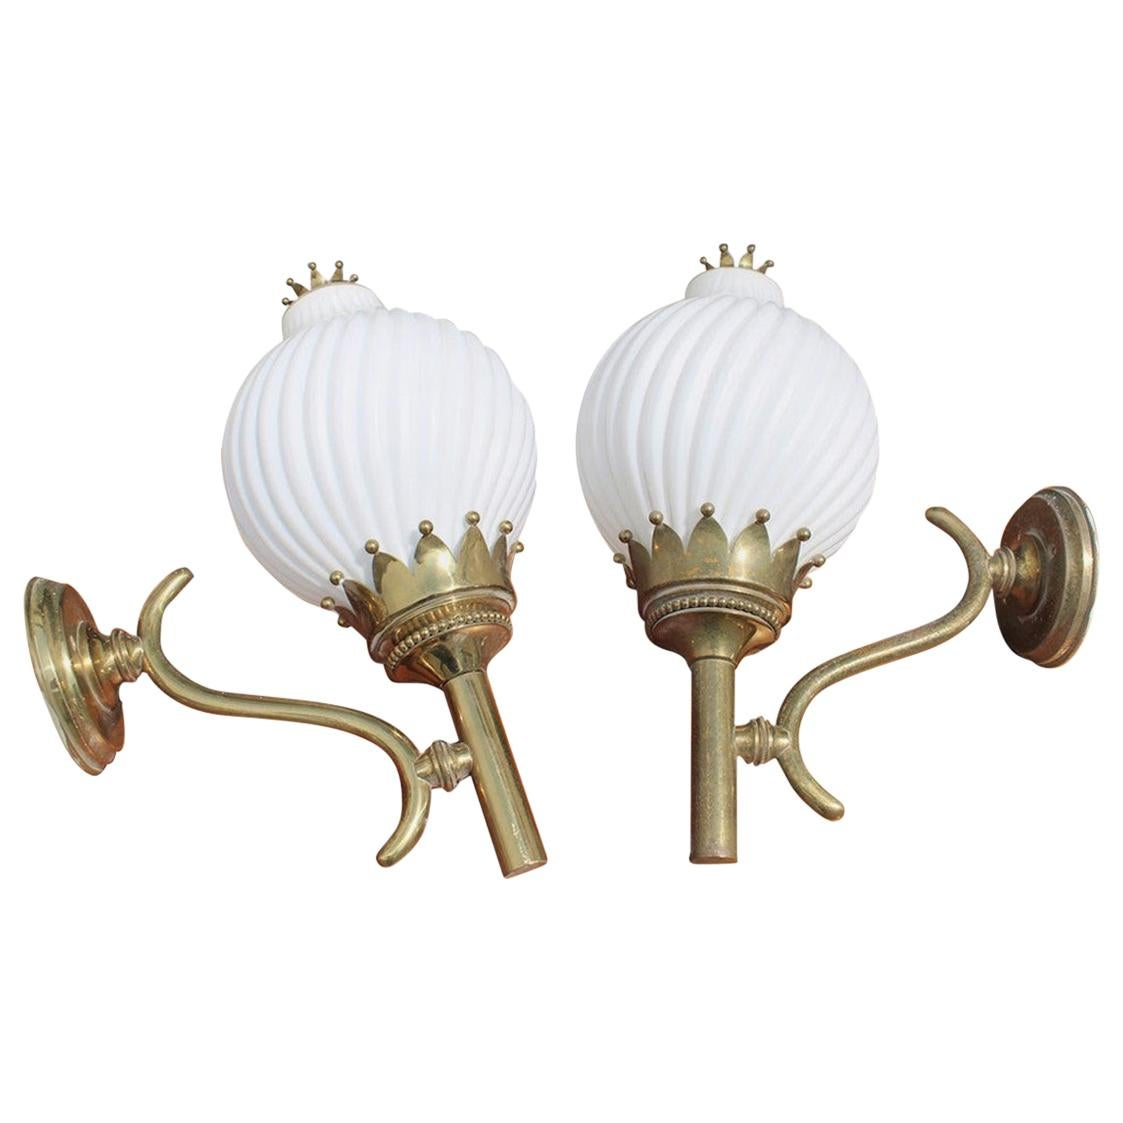 Pair Wall Sconces Angelo Lelii for Arredoluce Monza 1961 Tortiglioni Gold Brass